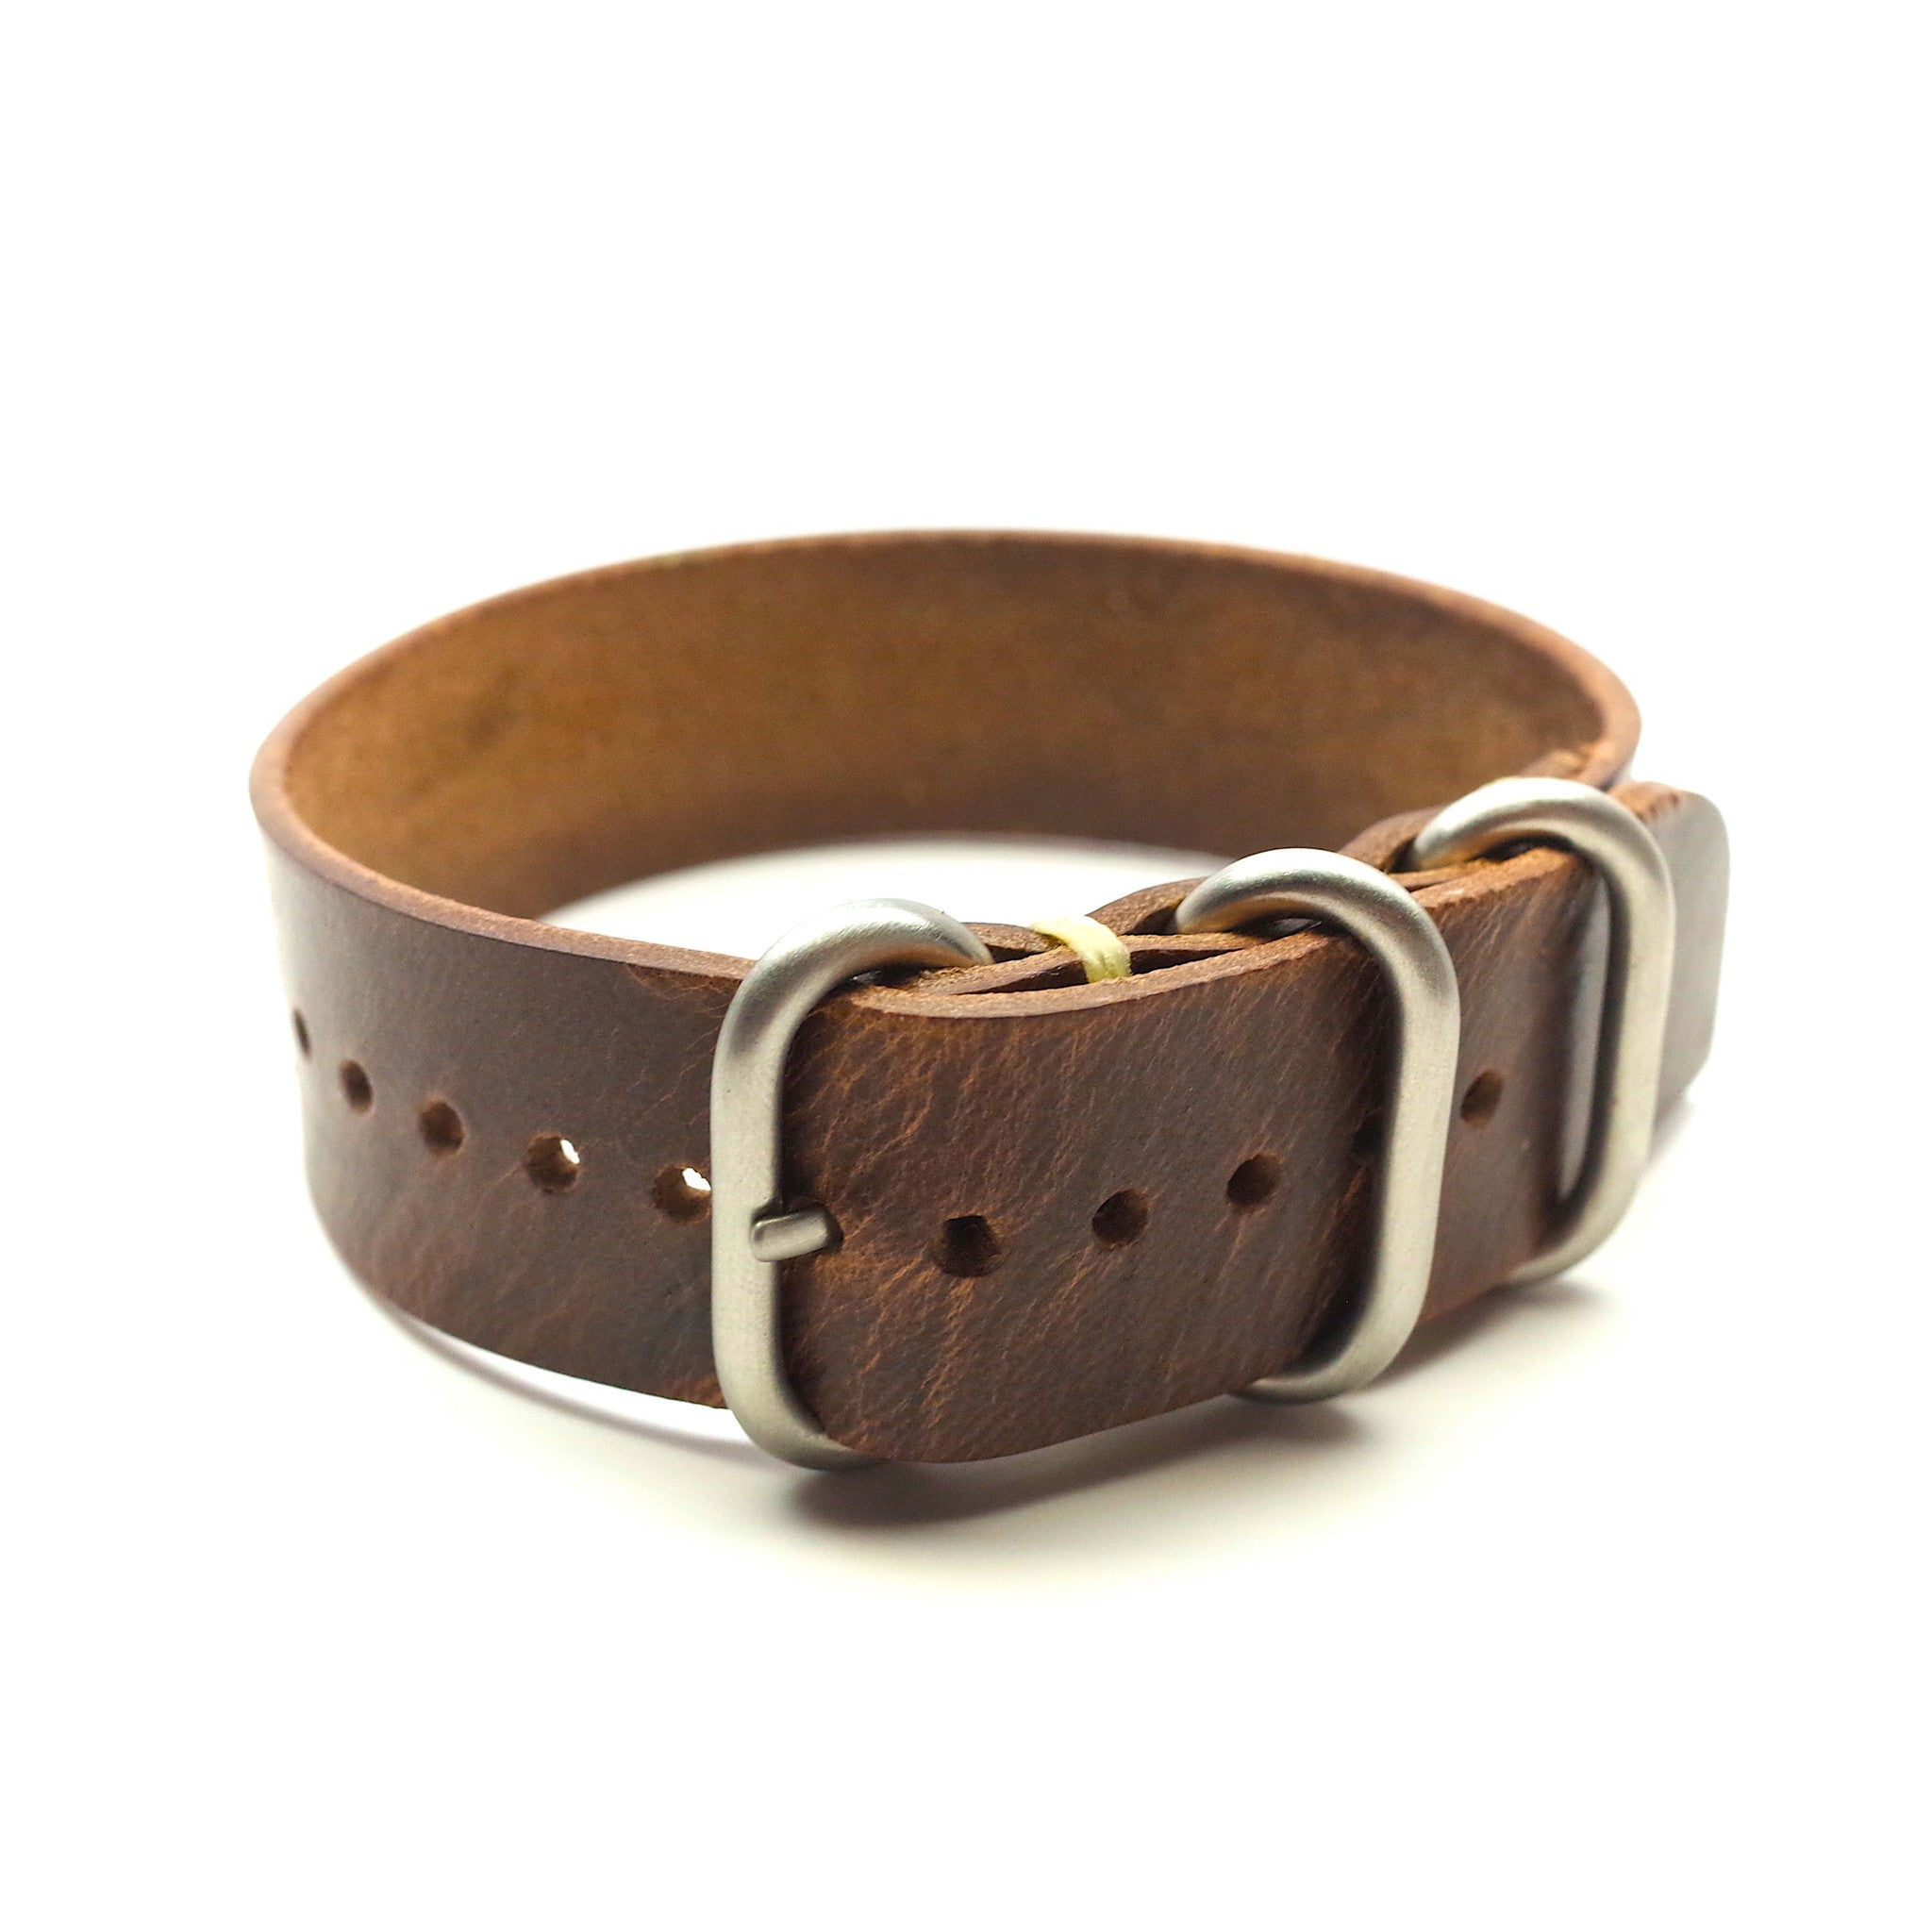 Horween Leather Military Style Watch Band: Natural Chromexcel